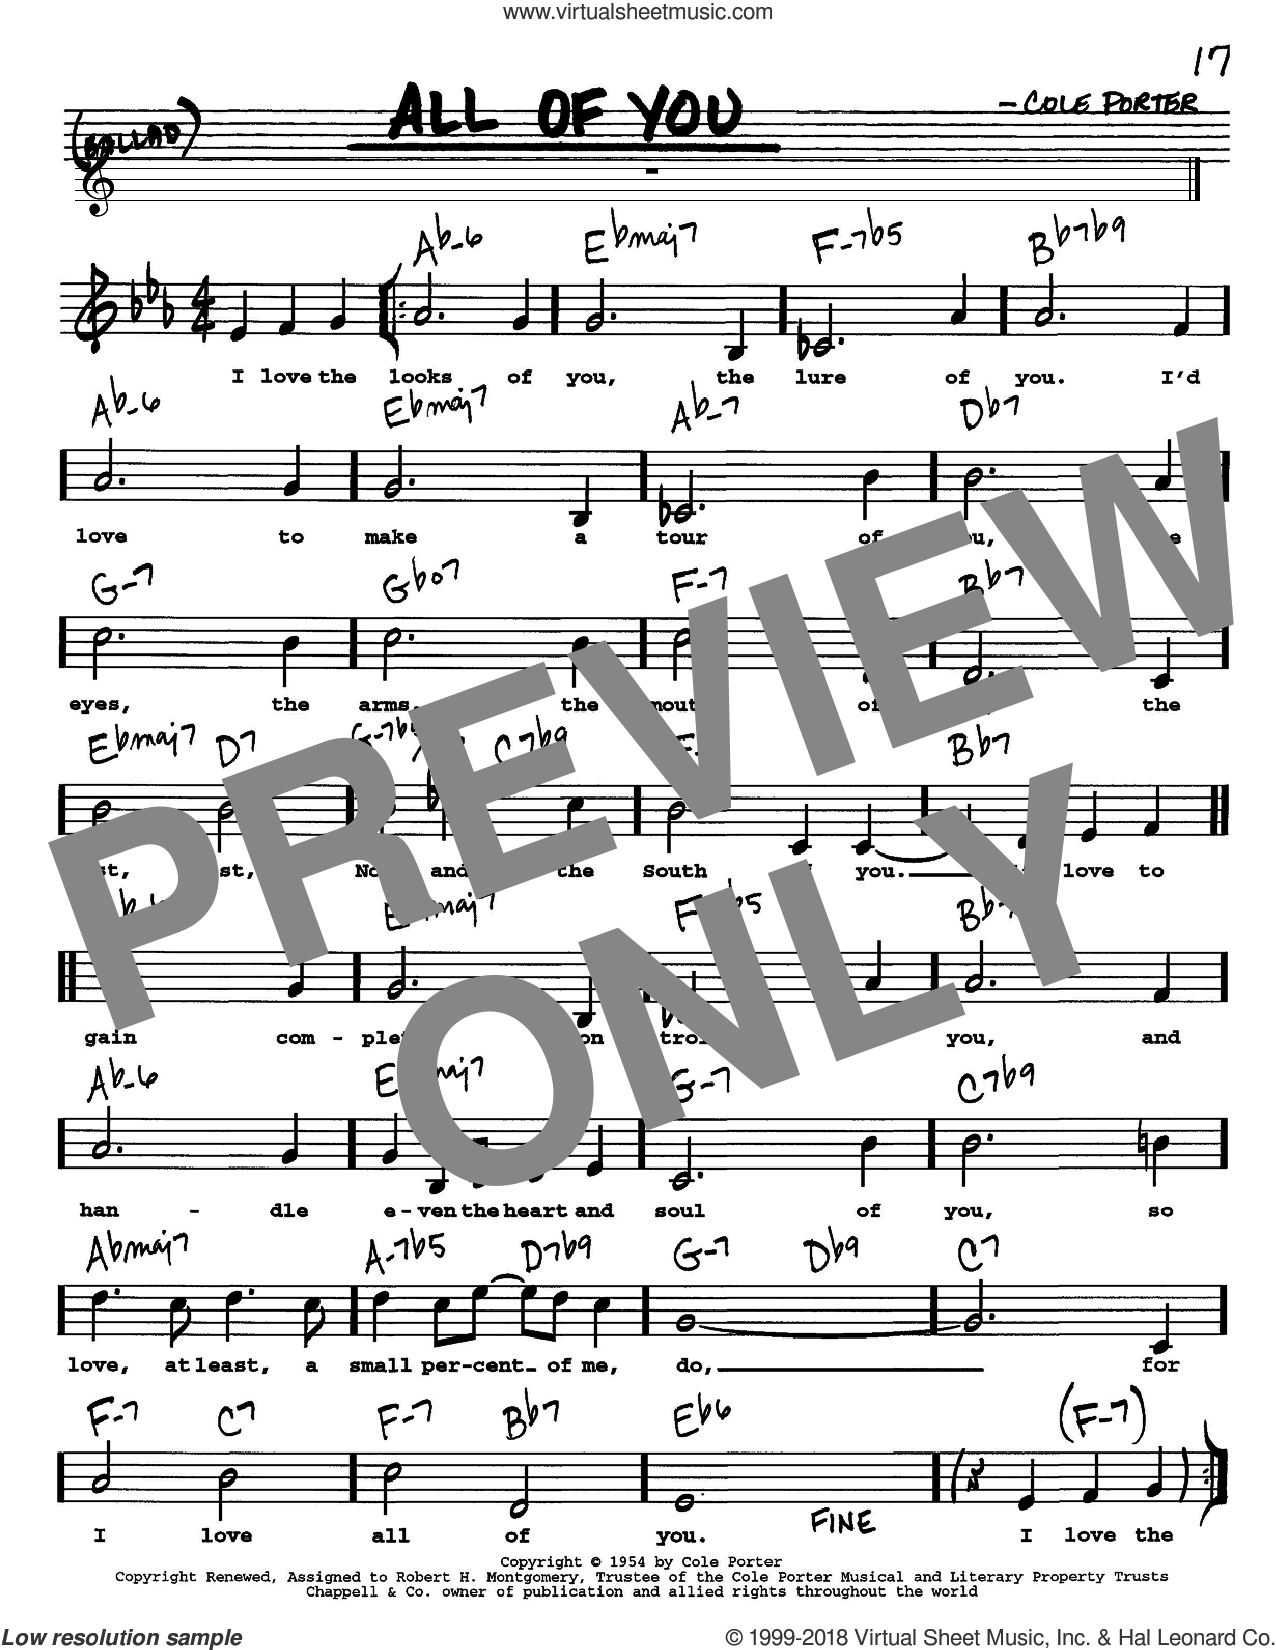 All Of You sheet music for voice and other instruments (Vocal Volume 1) by Cole Porter. Score Image Preview.